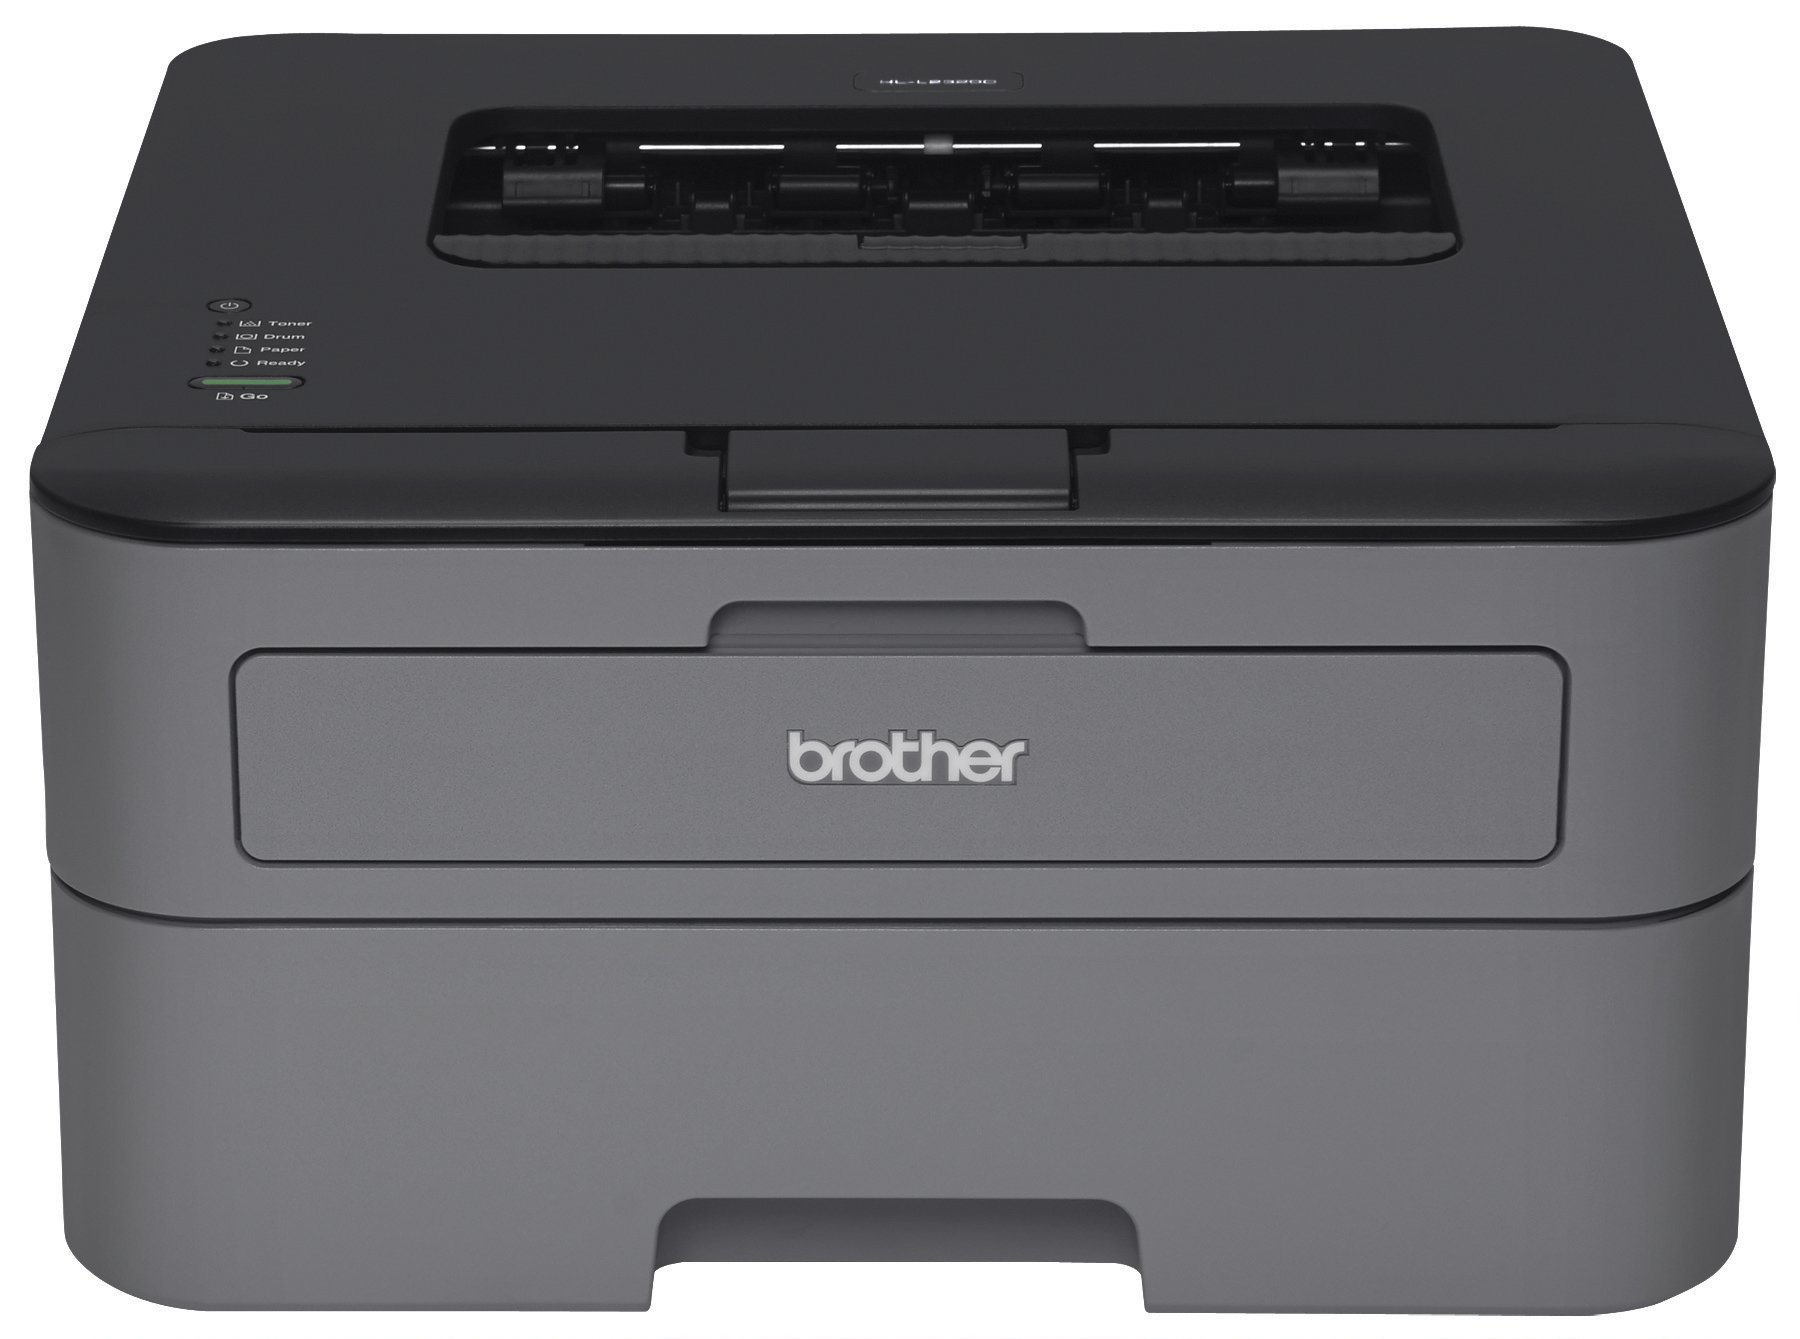 Brother Printer EHLL2320D Compact Laser Printer With Duplex Printing (Certified Refurbished) by Brother